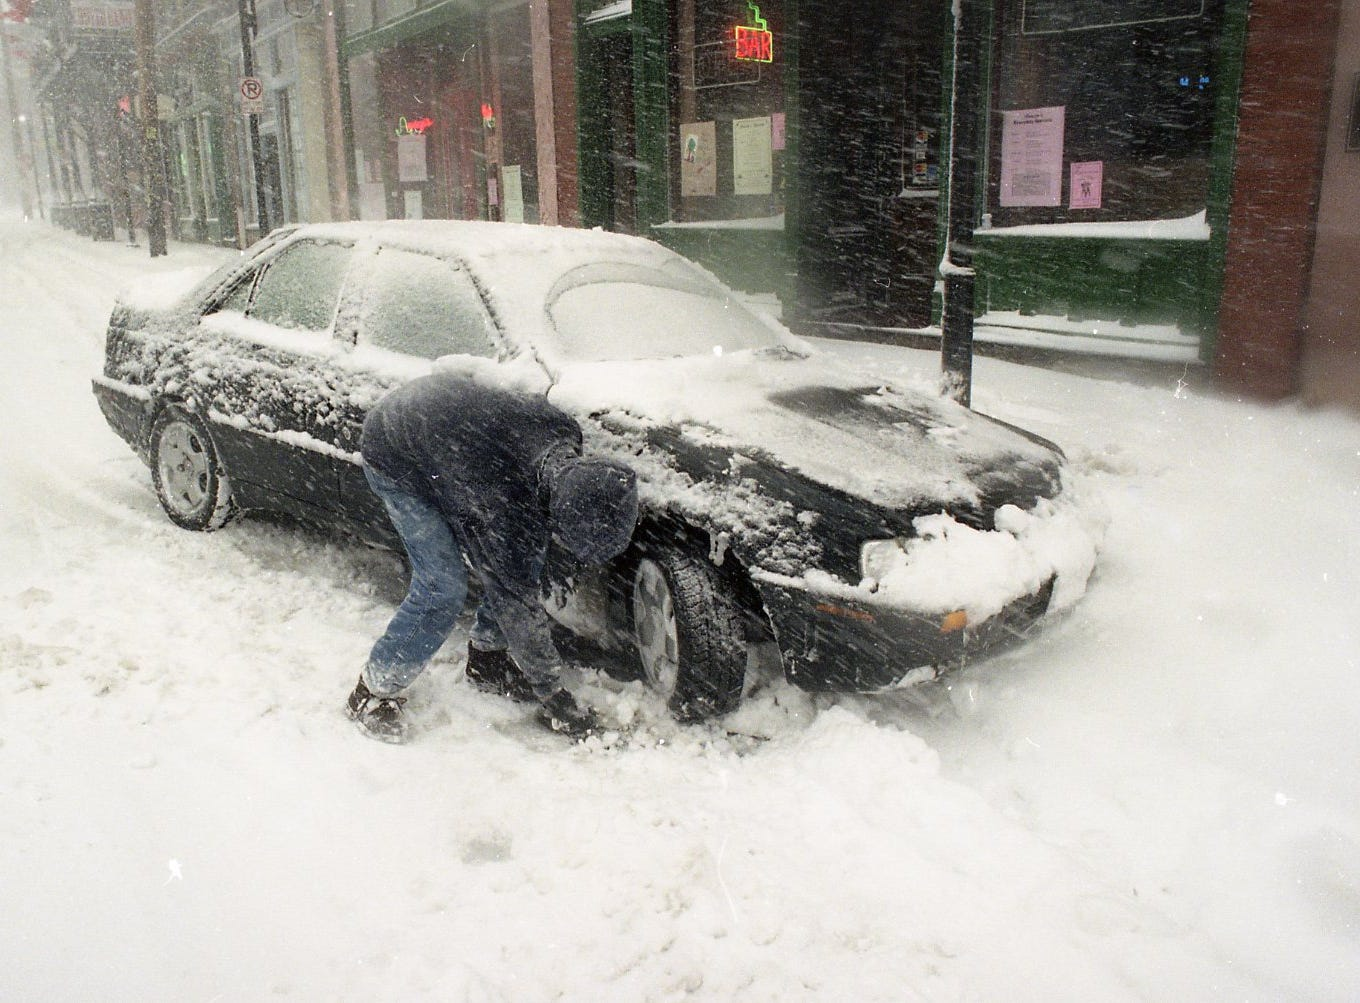 Robert Escarcega, a UT student, uses a dust pan to clear snow from the front of his tires as the snow falls sideways down Central St. in the Old City in March 1993.